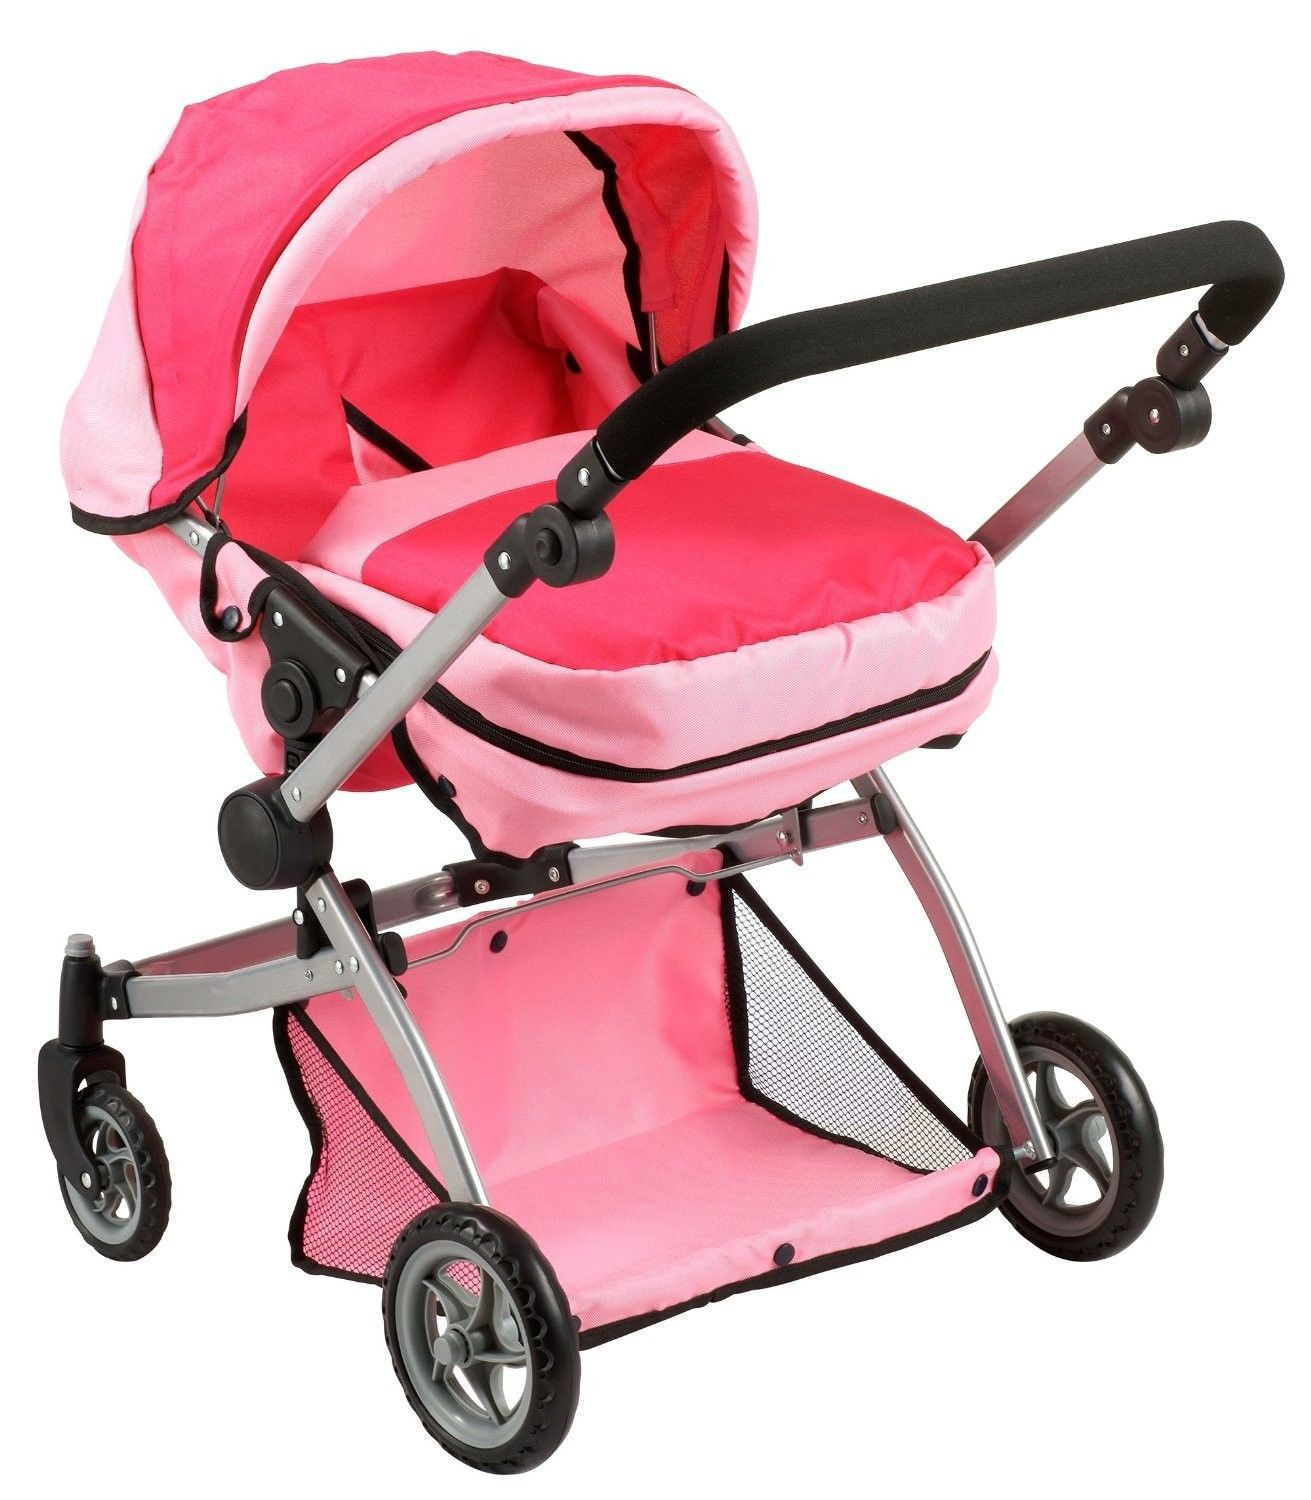 Toys For Strollers : Deluxe twin doll pram stroller pink baby toddler play